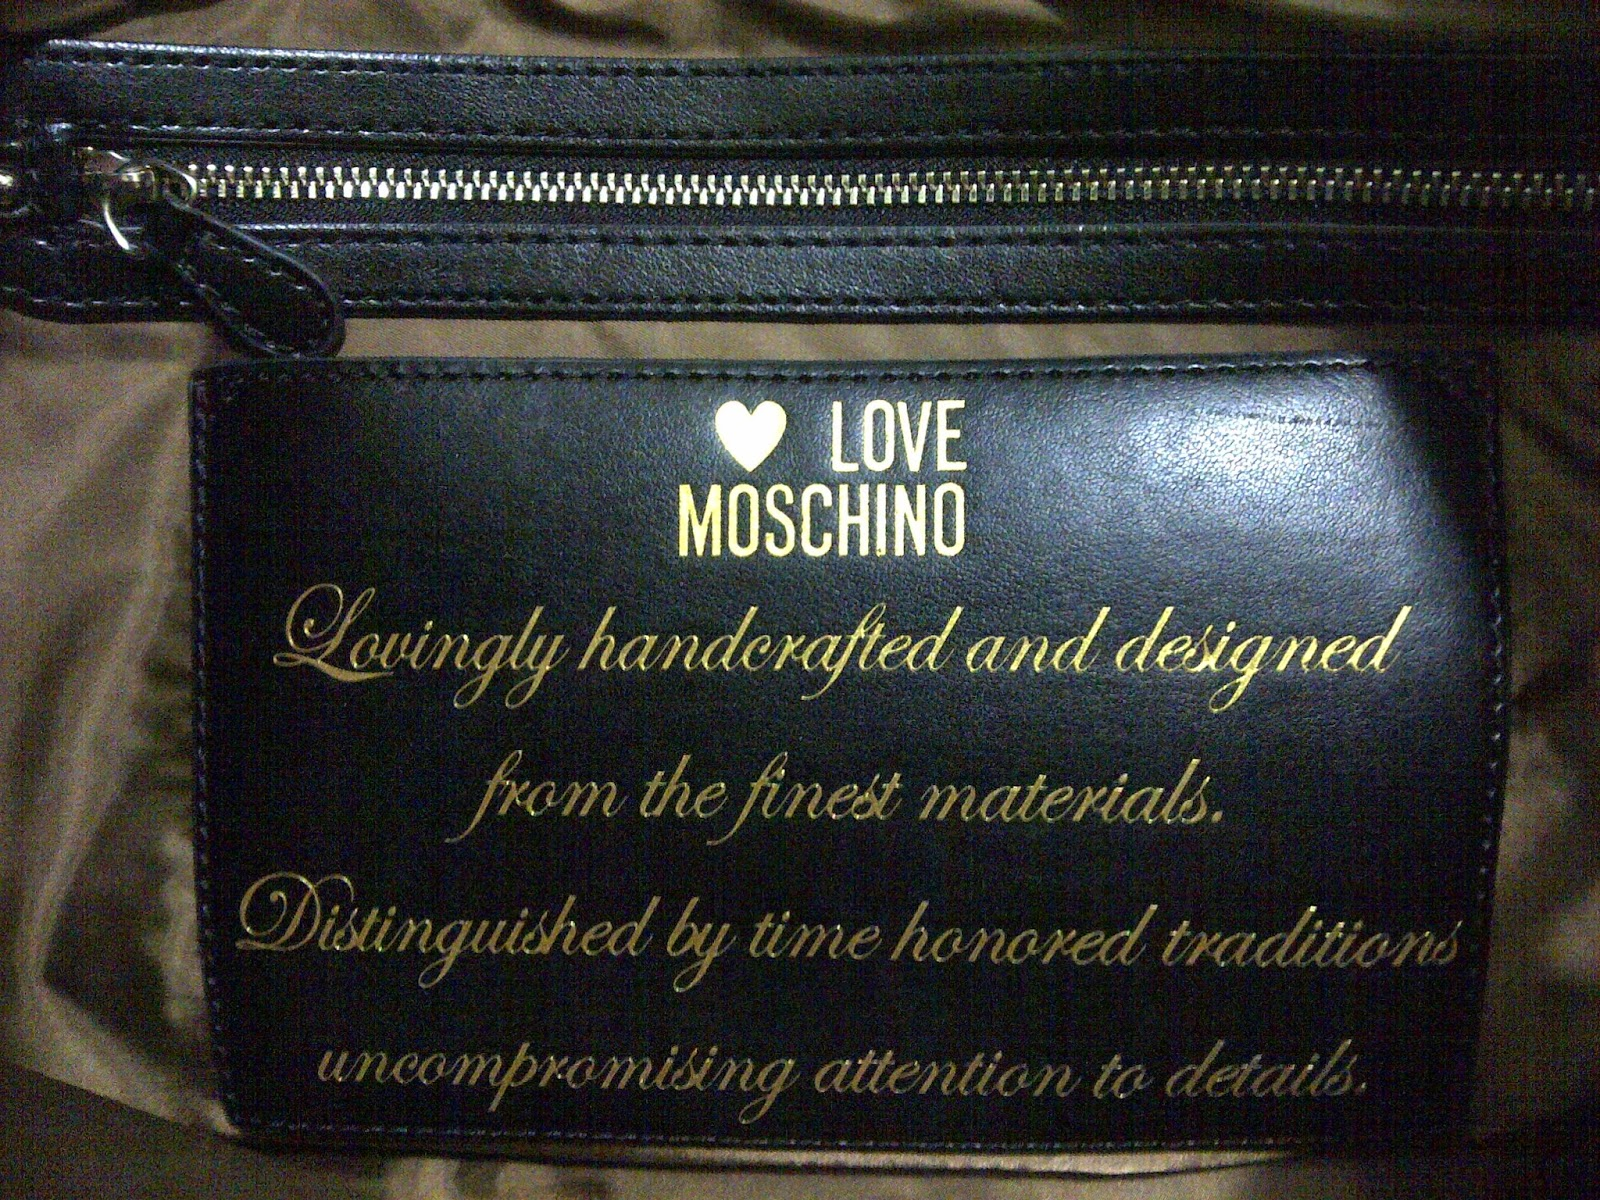 Love Moschino Tote Bag details